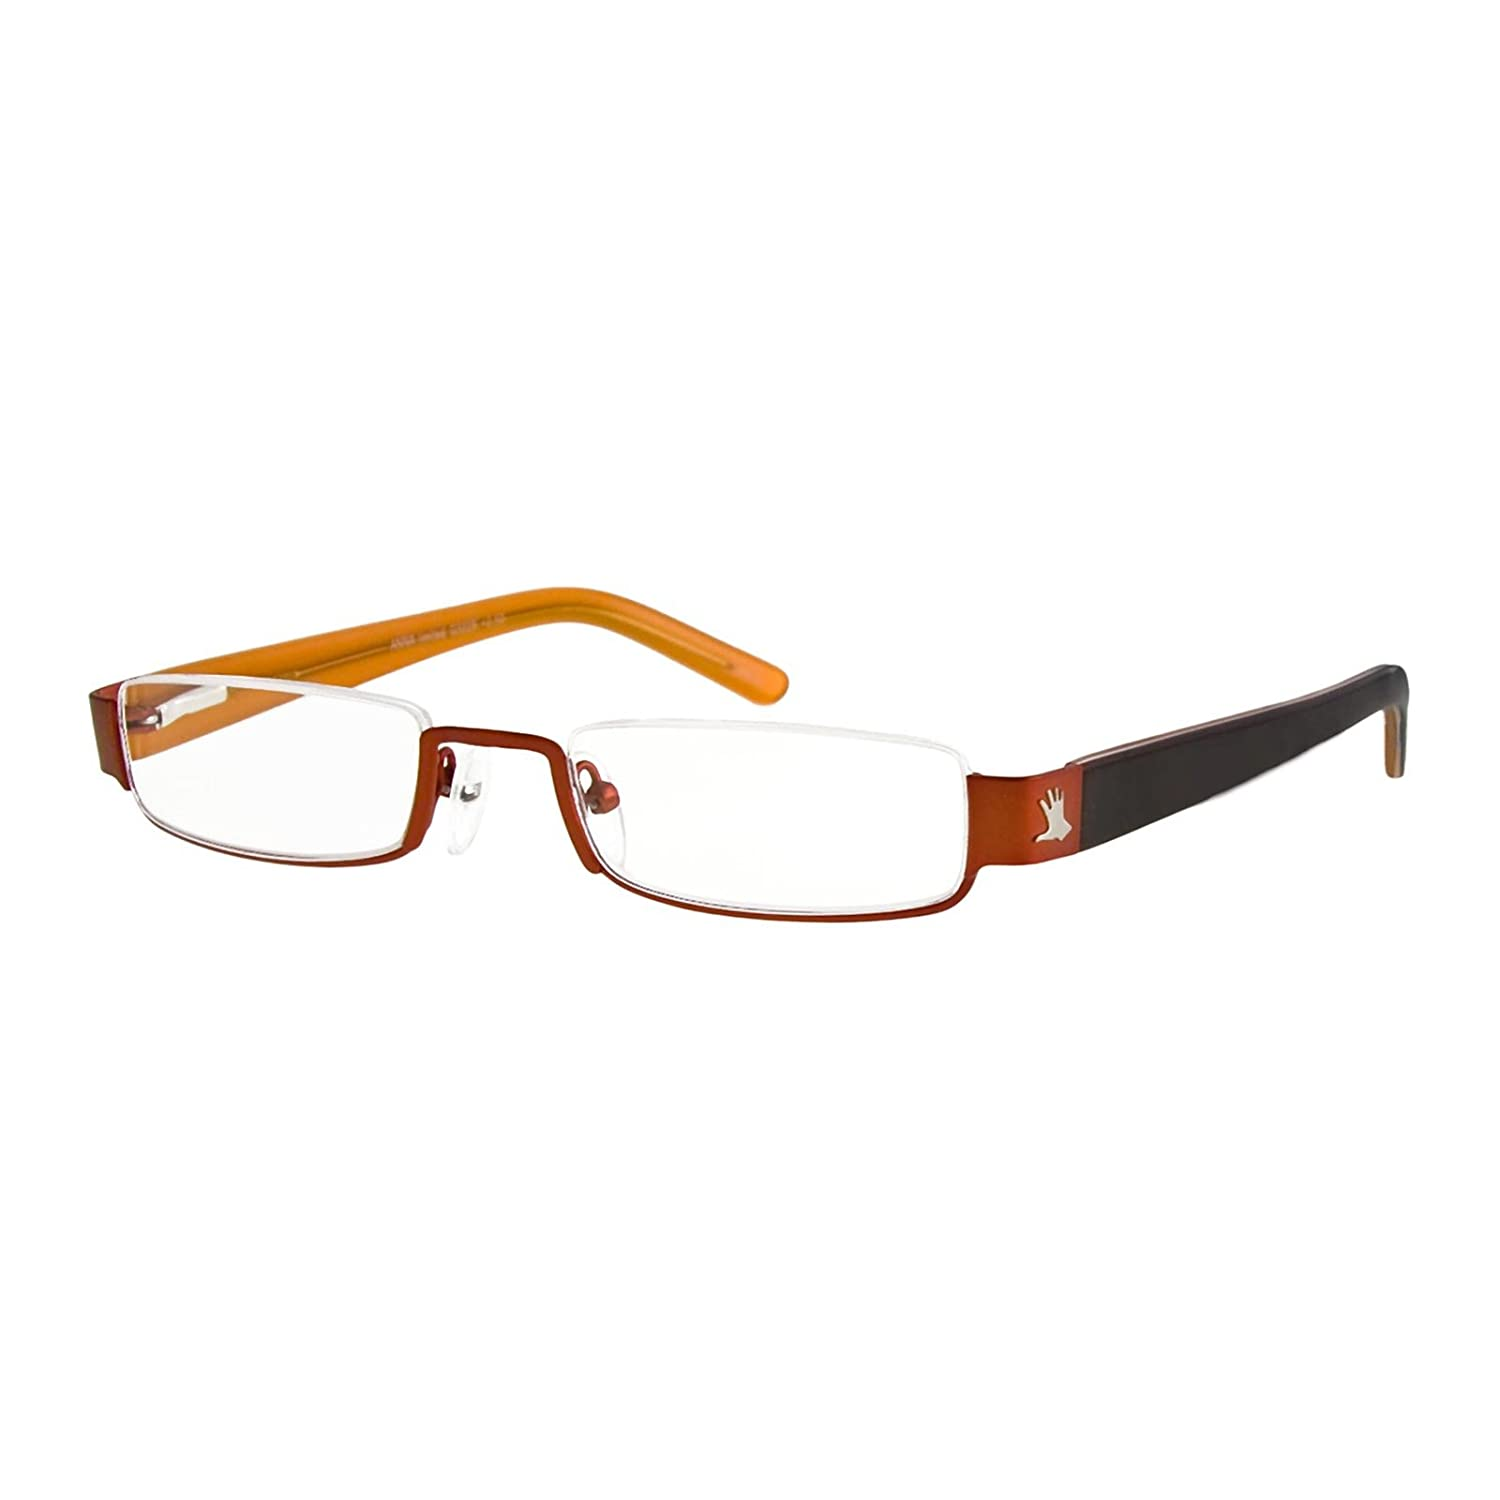 dced46aa5c29 Amazon.com  I NEED YOU Reading Glasses Black Half Rimmed Rectangular Frame  Eyeglasses For Women With Plastic Lenses - Anna Style - Prescription Eyewear  With ...